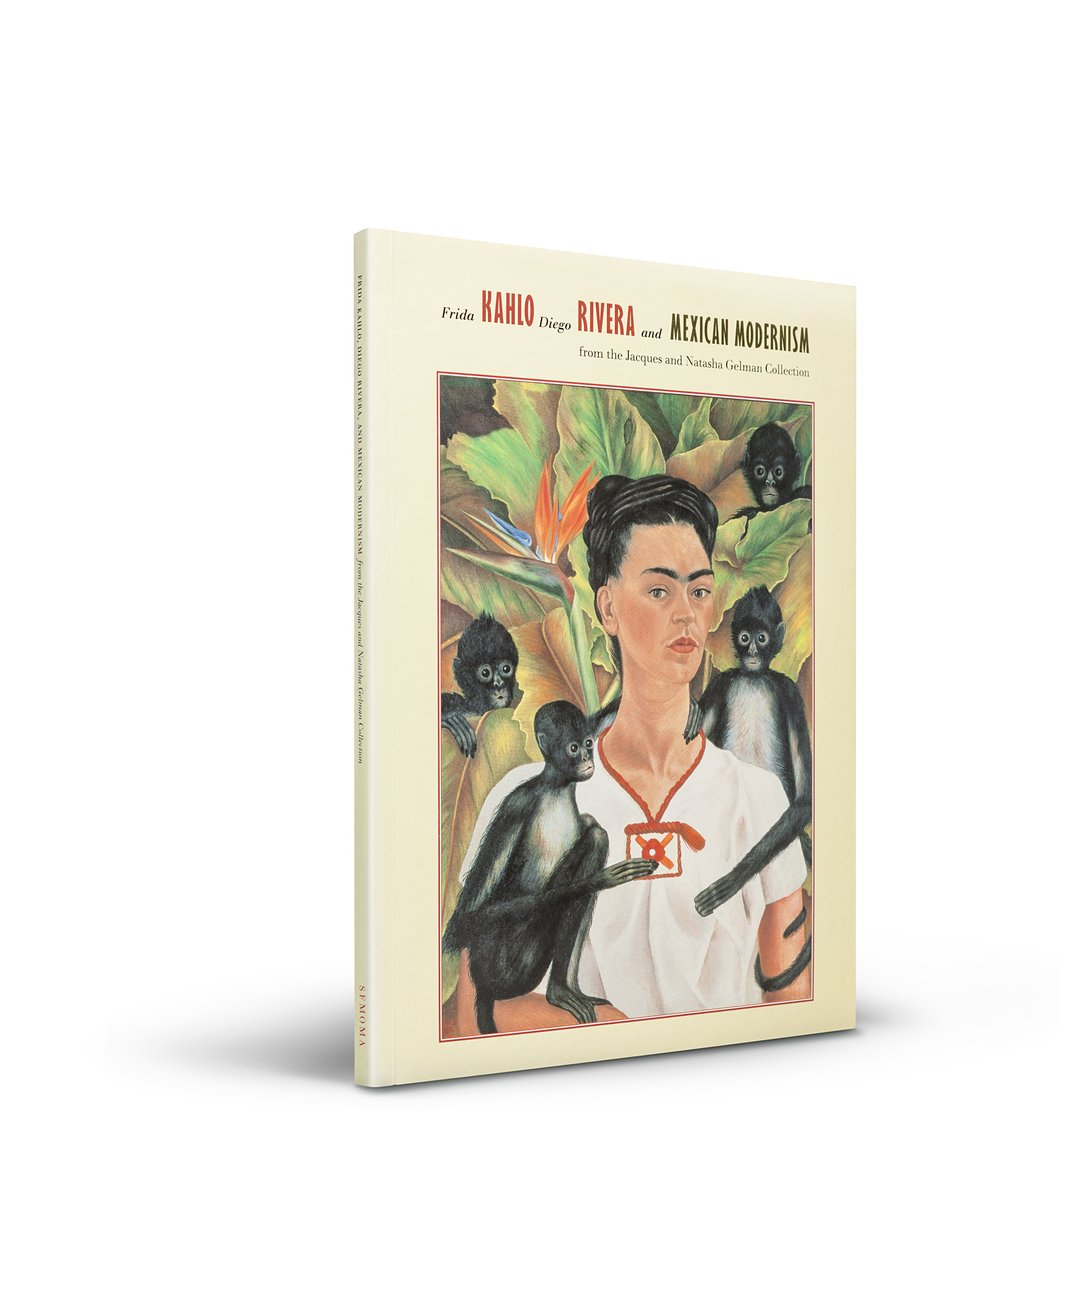 Frida Kahlo, Diego Rivera, and Mexican Modernism cover